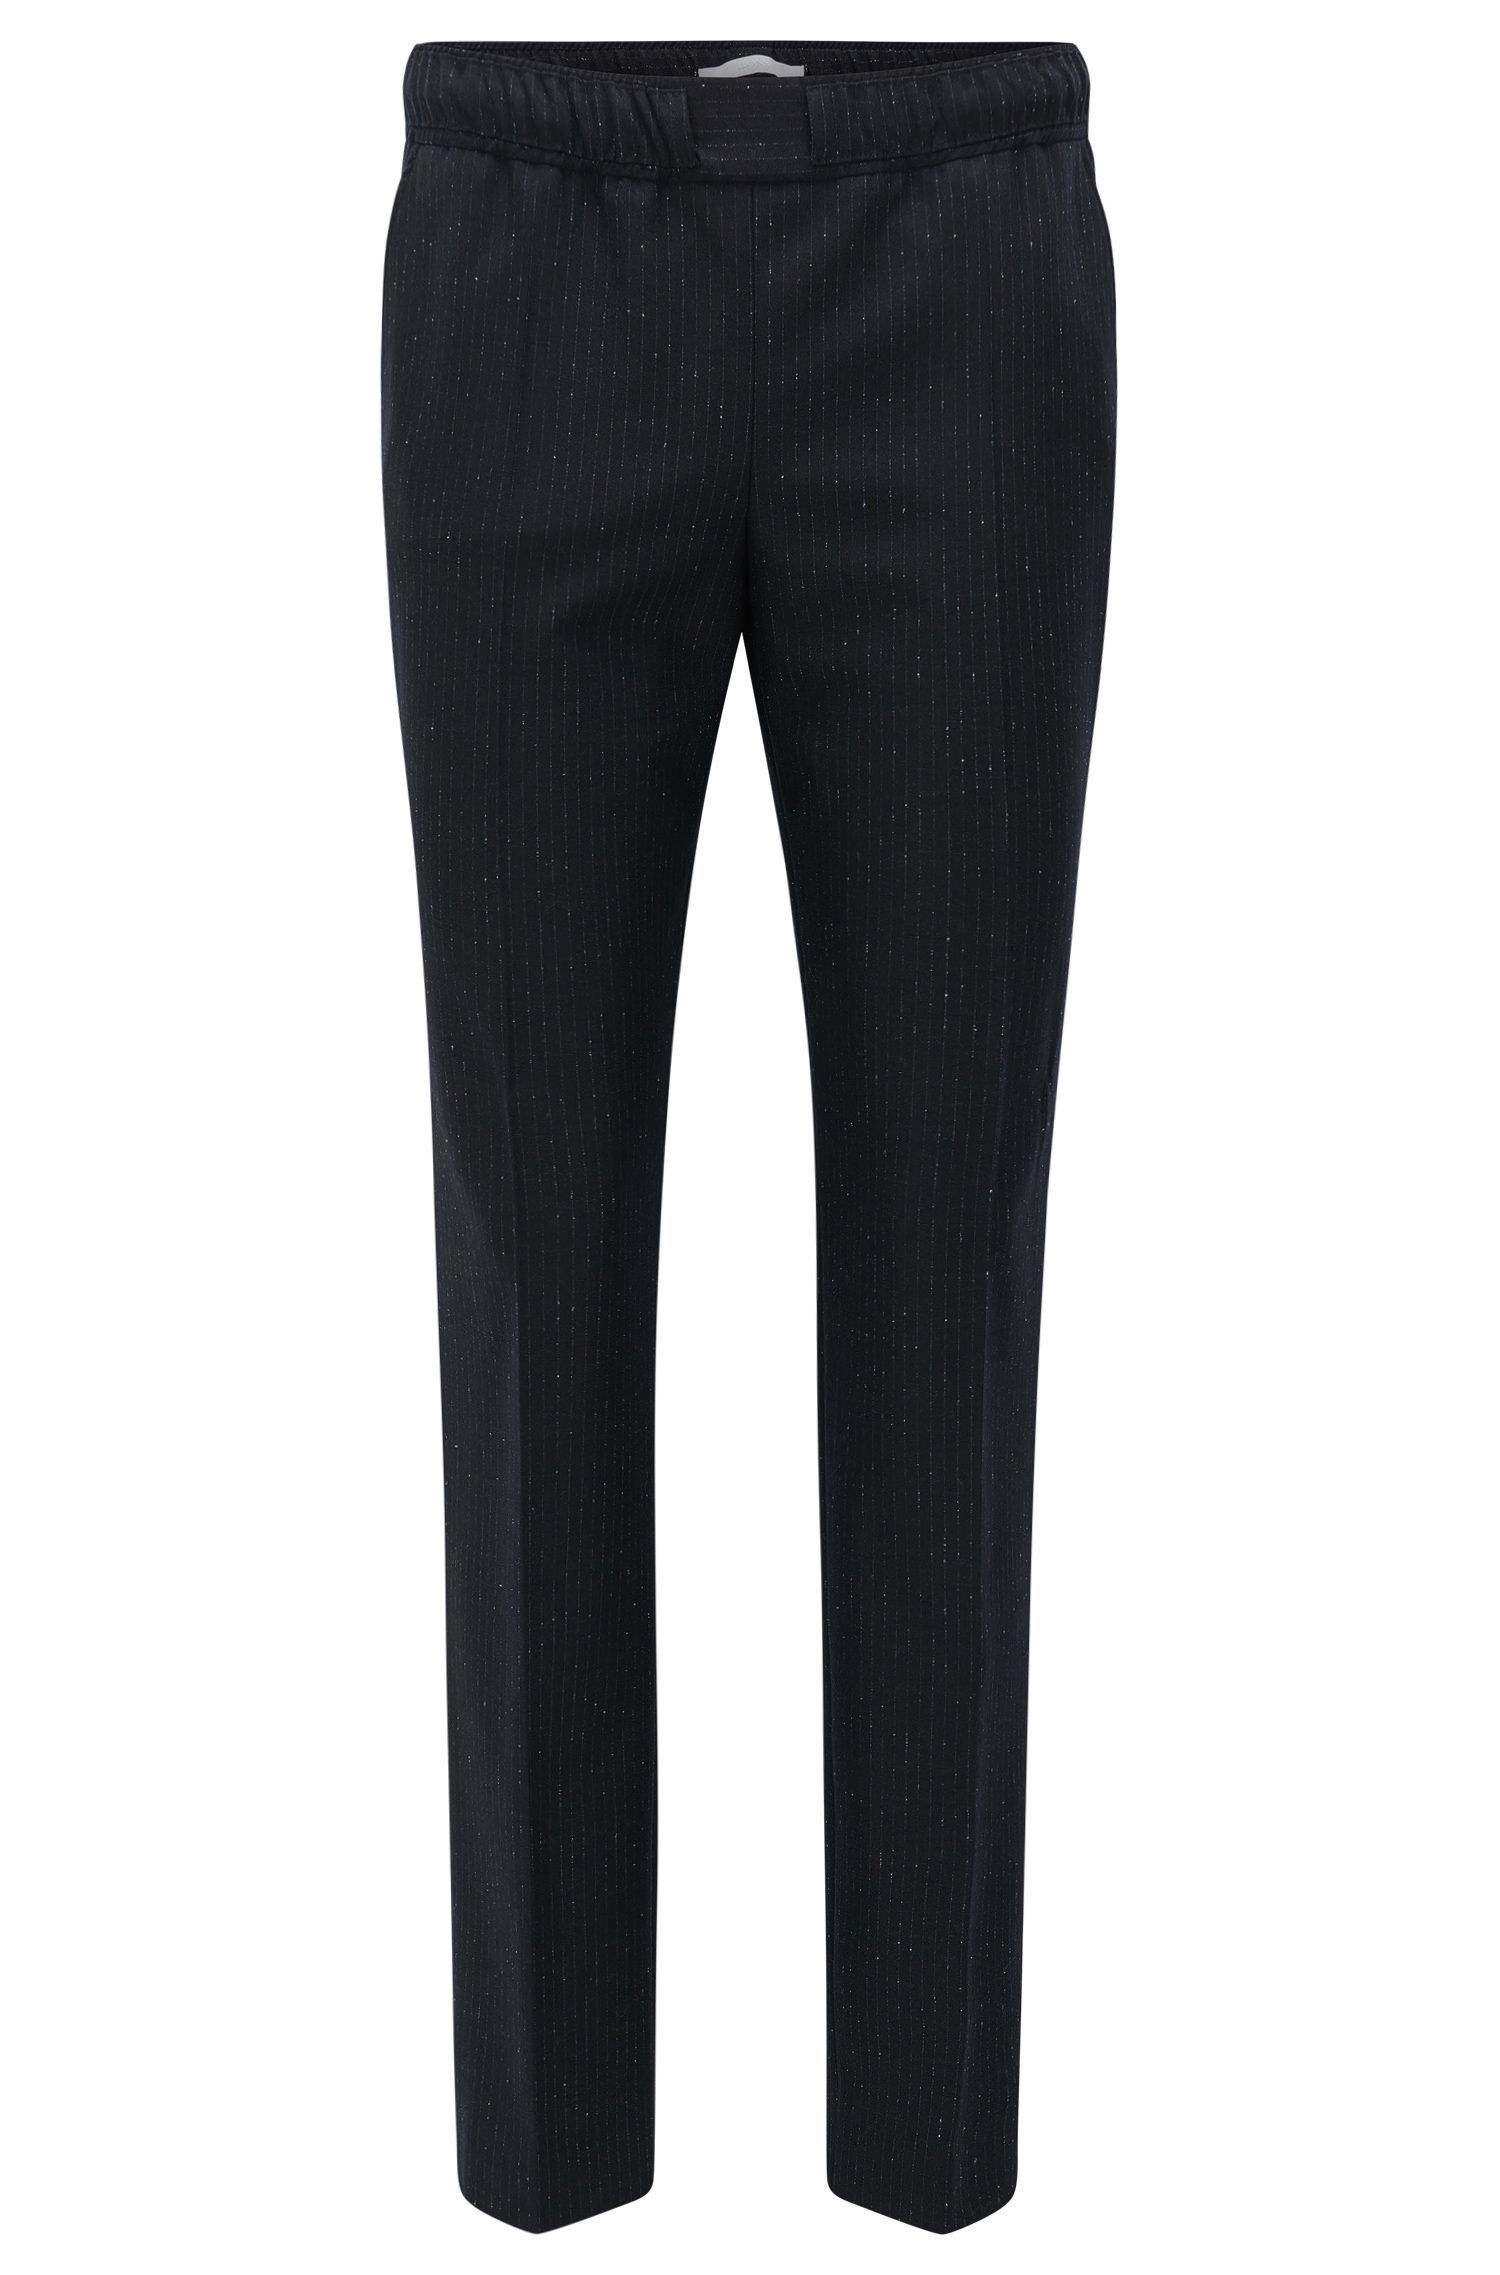 Pinstripe Stretch Virgin Wool Jogger Pant | Torana, Patterned